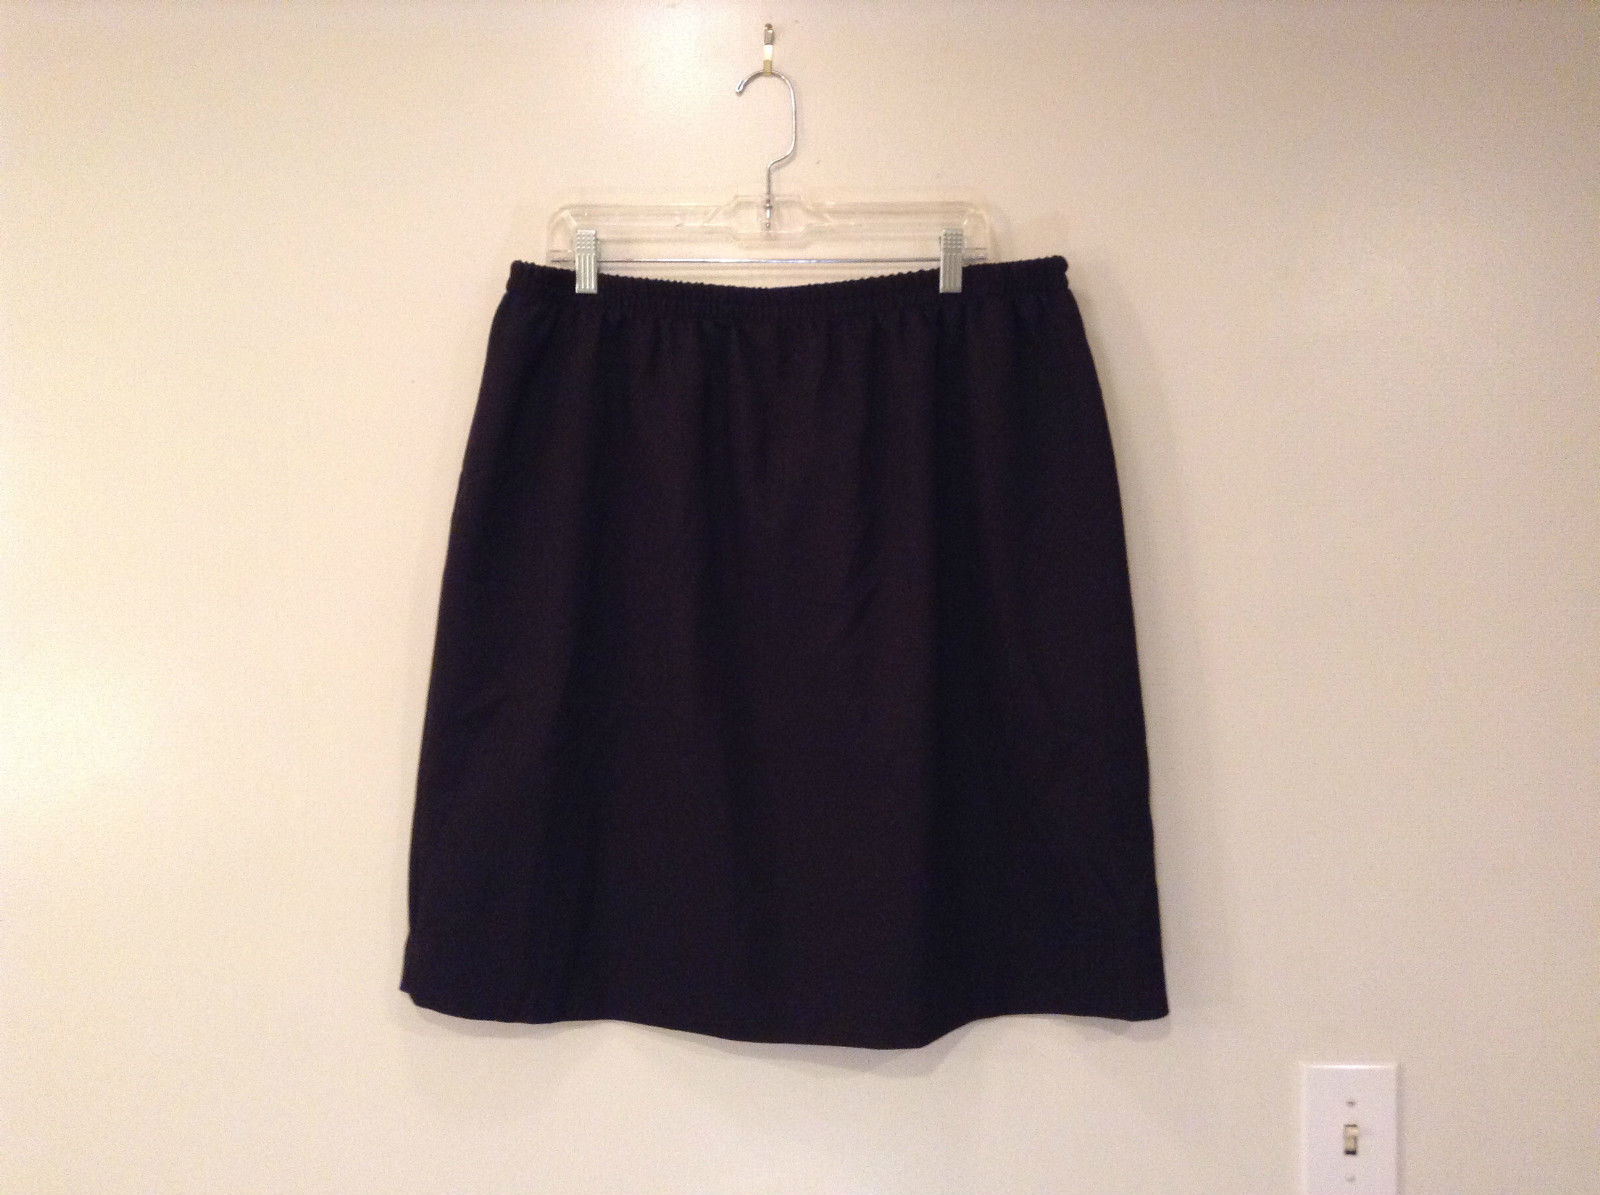 Black 100 Percent Polyester Skirt Elastic Waist Slit on Back Size 24W Petite